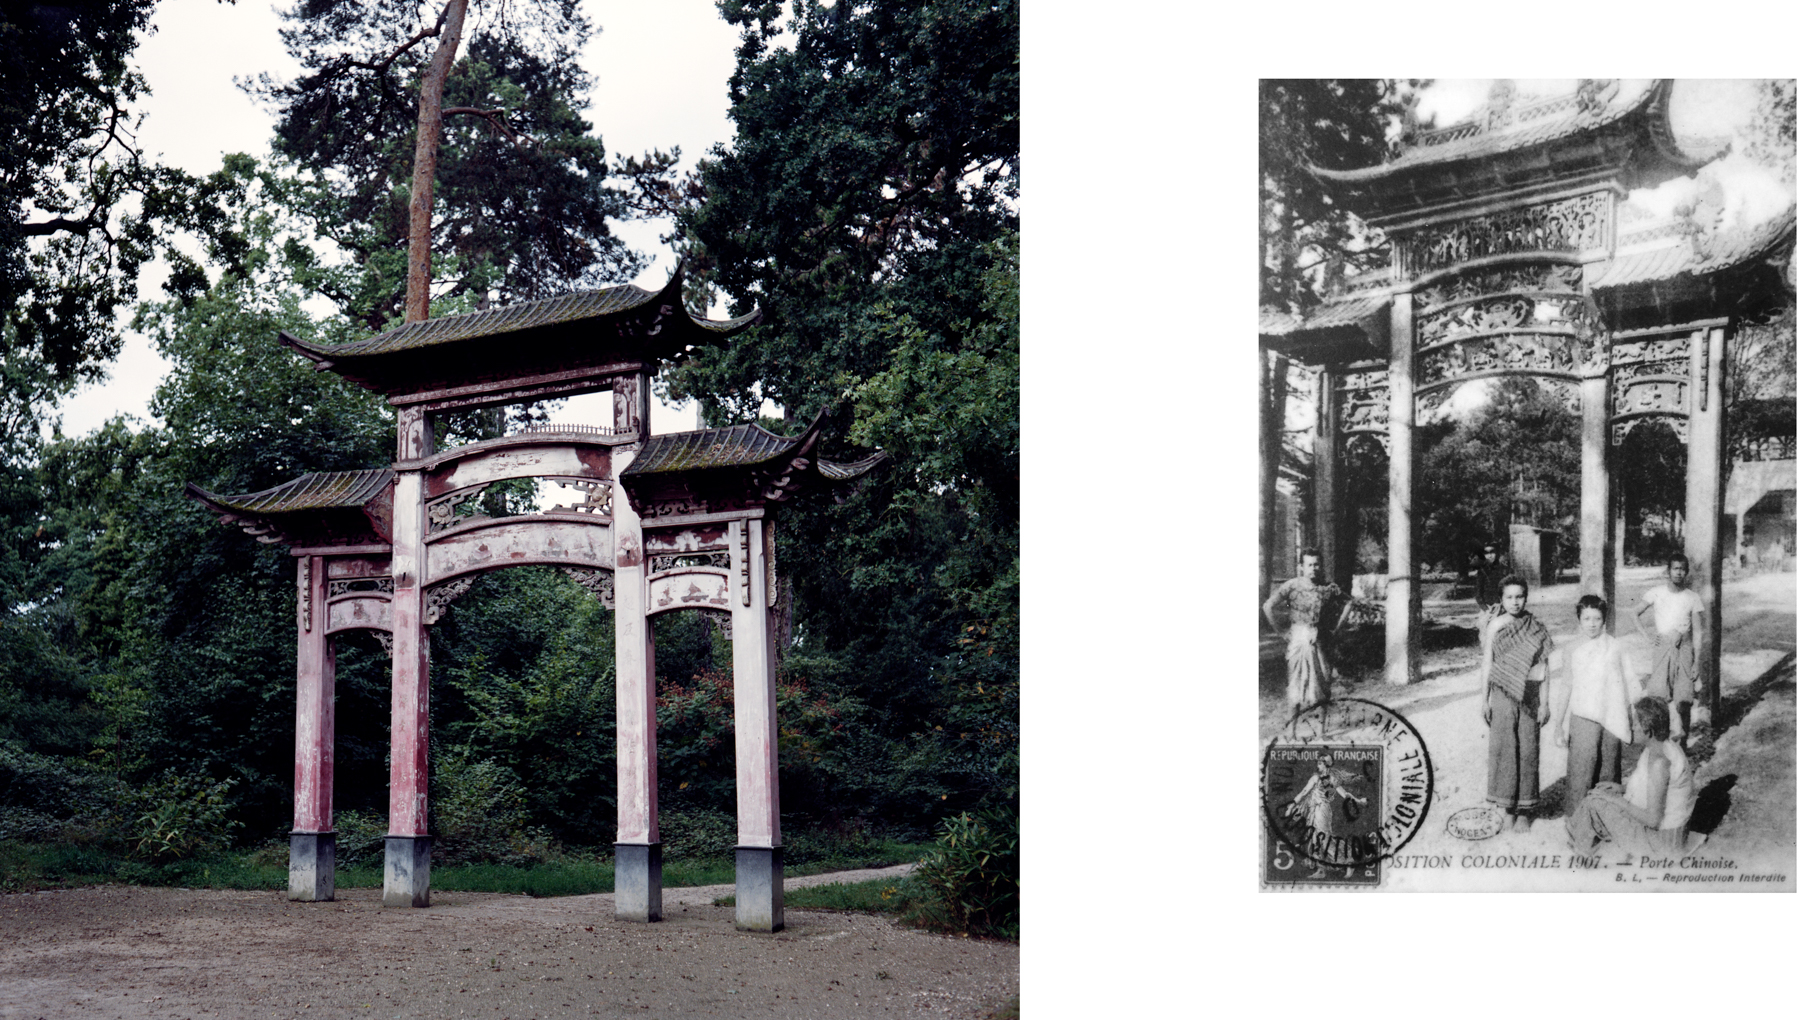 Left: La Porte Chinoise/The Chinese door, at the entrance to the Jardin d'Agronomie Tropicale (JAT) in a small park outside Paris. This gateway's origin is unknown, but it was originally installed in the Paris 1906 colonial exposition, before moving to the JAT in 1907. Right: A historical photo depicts la Porte Chinoise as installed in the 1907 colonial exposition. Nogent-sur-Marne, France.